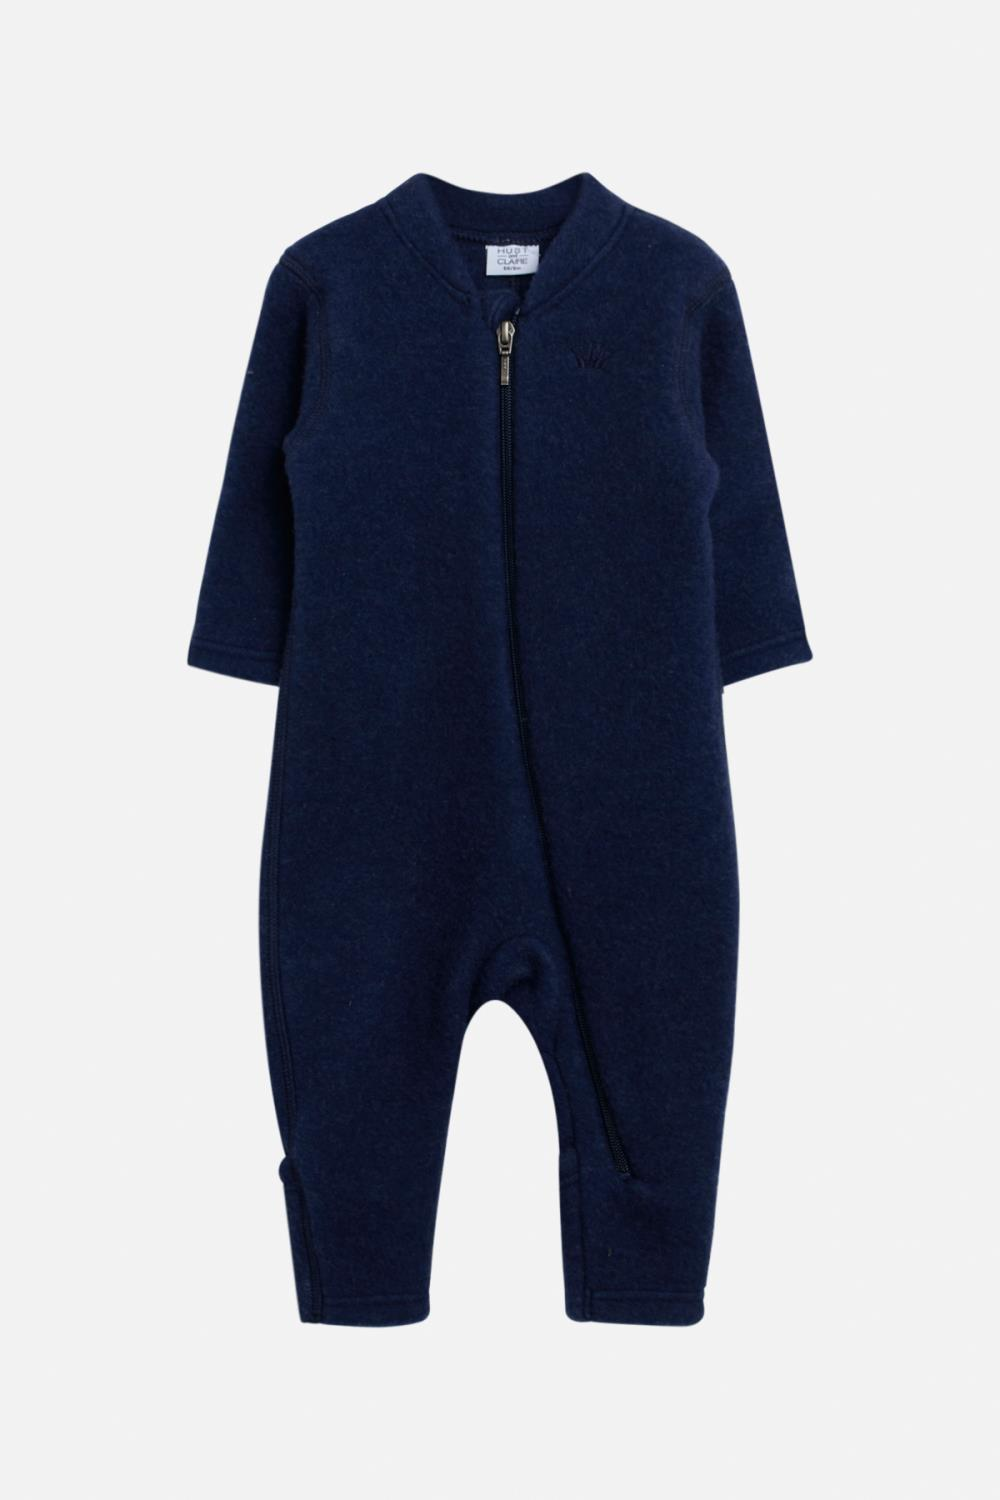 Hust and Claire - AW 20 Heldress Merlini merinoull, blues